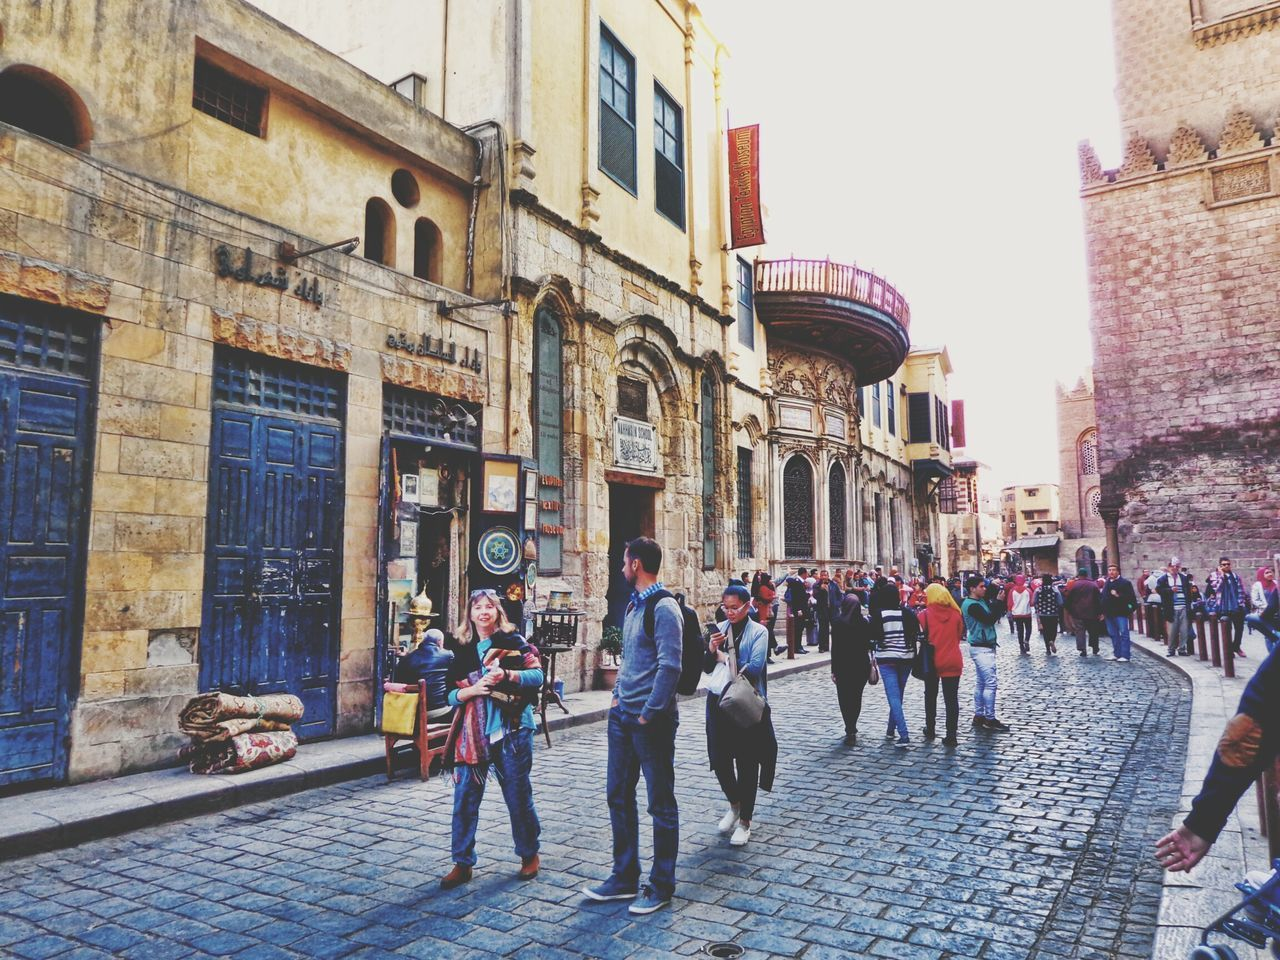 Travel Destinations Building Exterior City Built Structure Architecture History Tourist Day Outdoors Full Length Large Group Of People Women Sky People Variation Sunlight Islamic Cairo Close-up Fatimid History Al-moez Street Cairo Egypt Spirituality Charm Historical Place Antique Shop